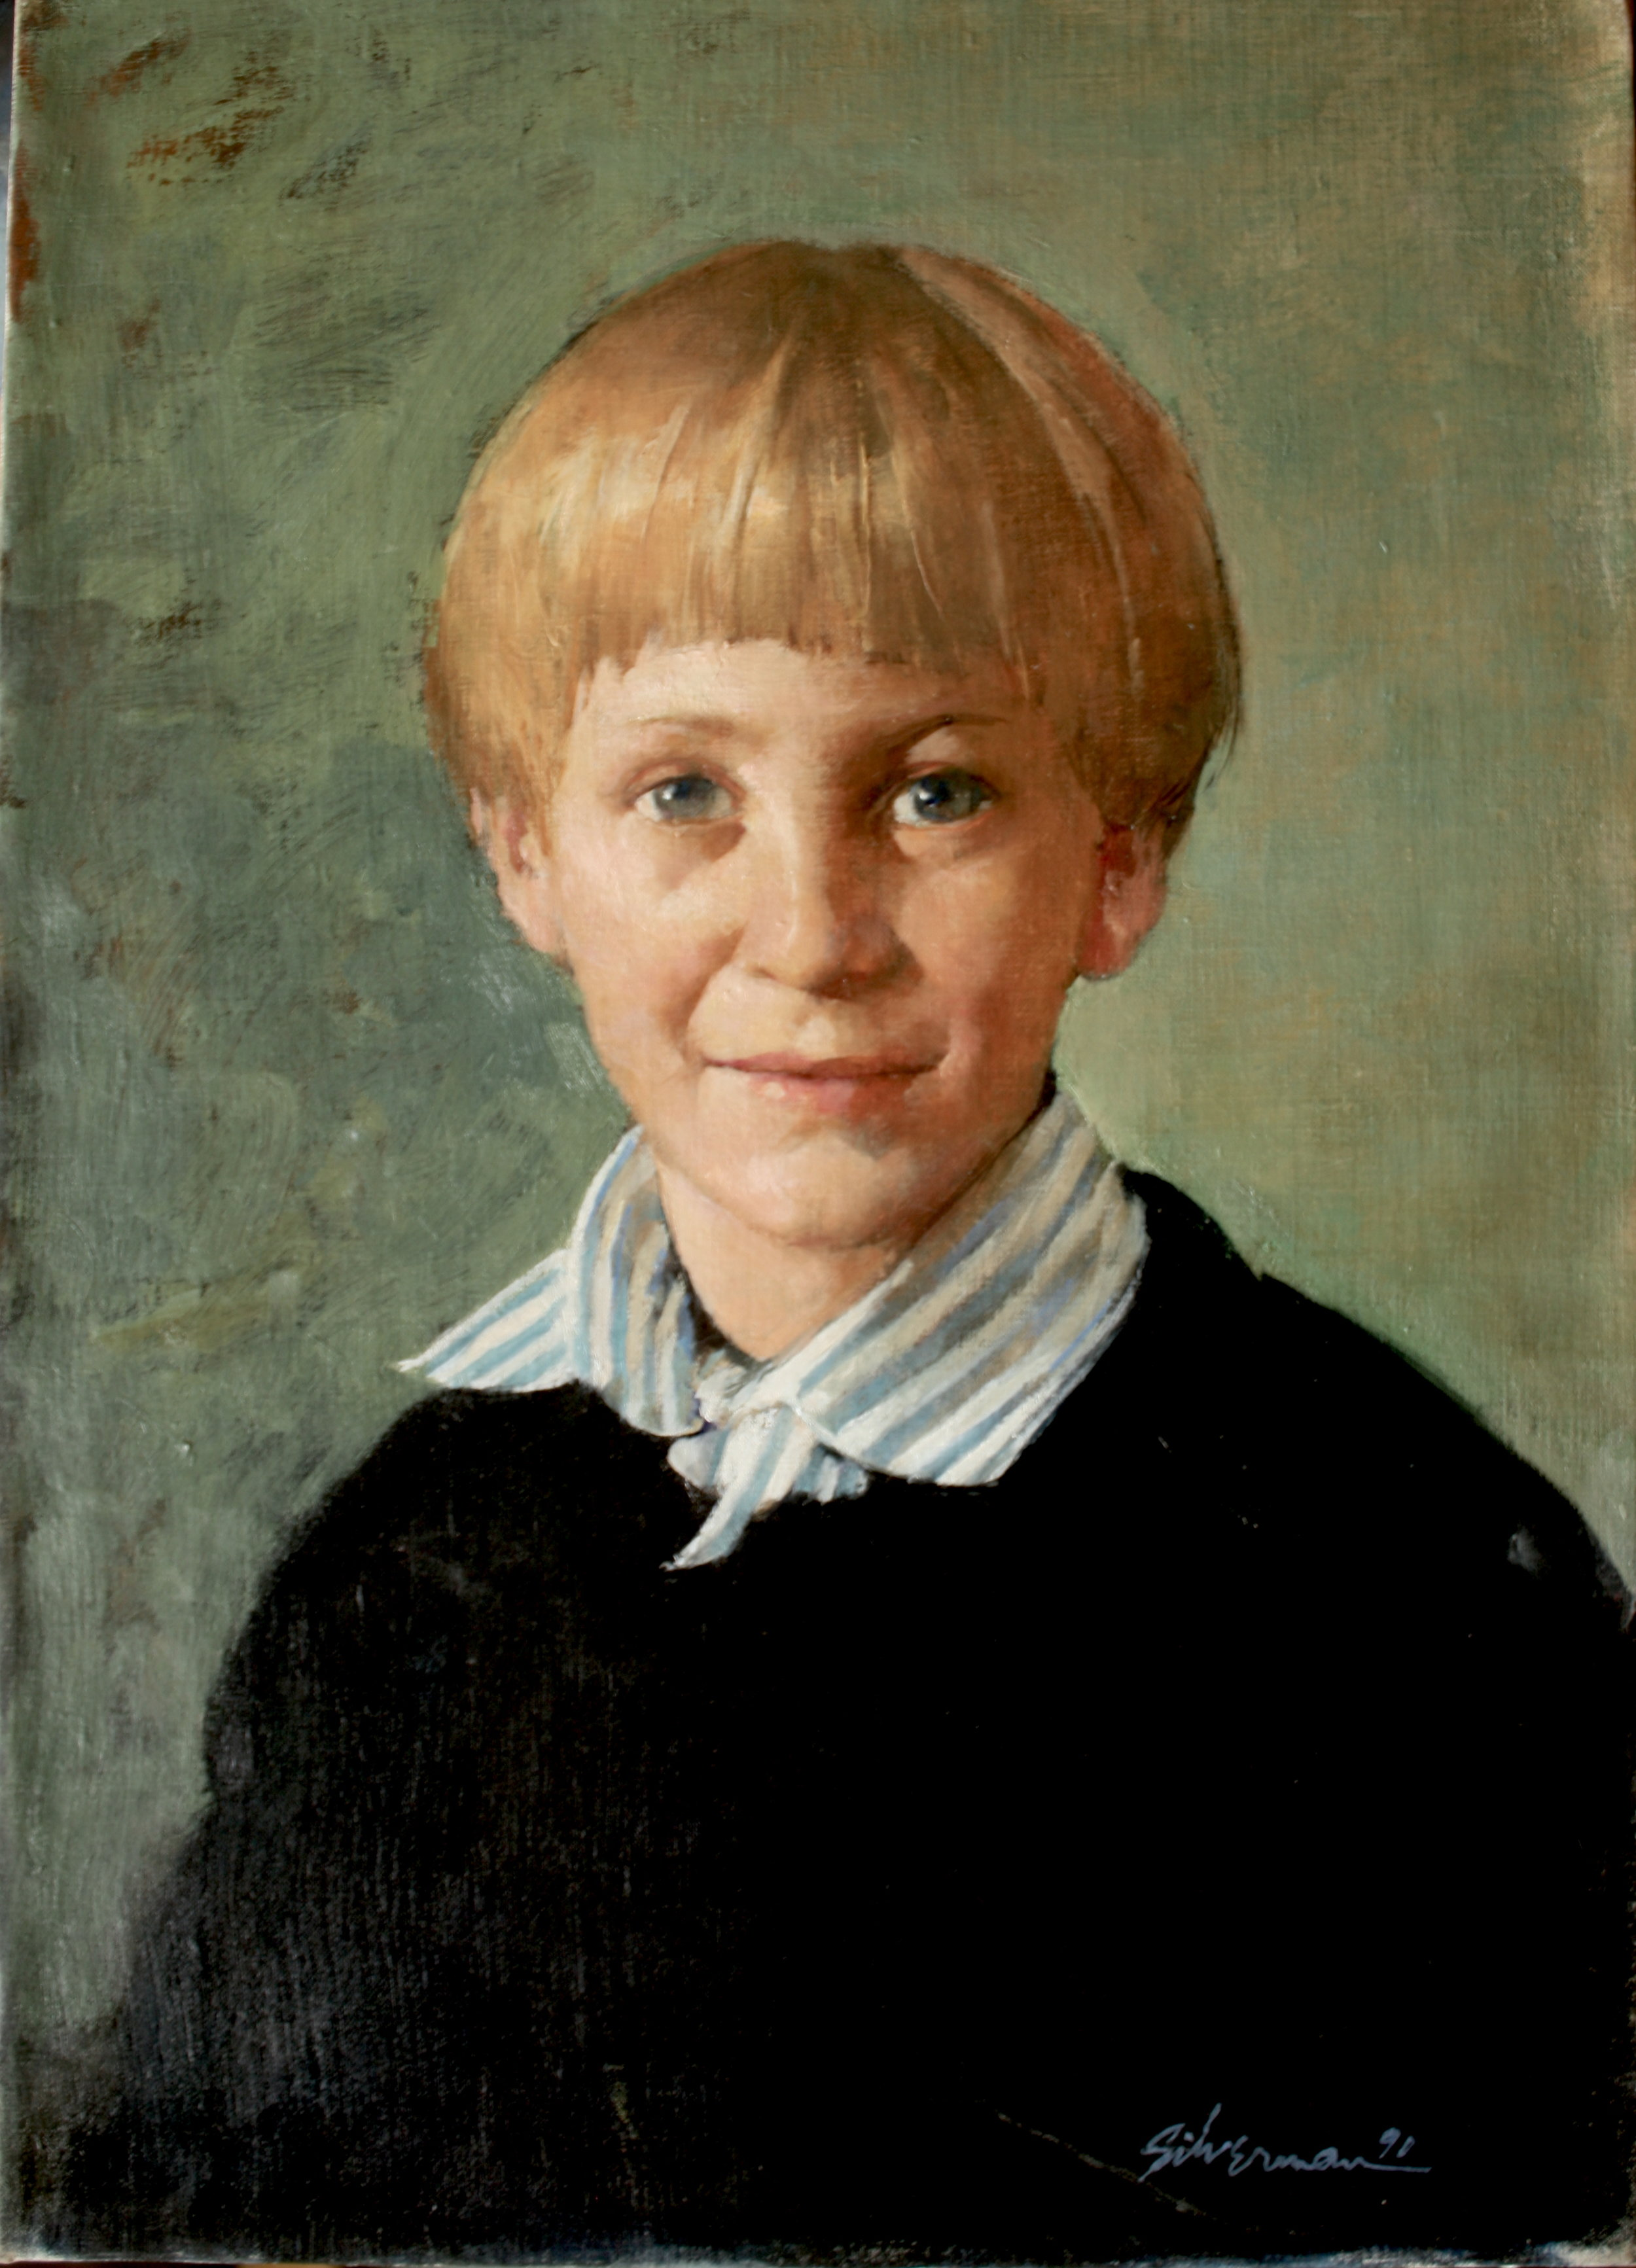 A Young Boy, 1998